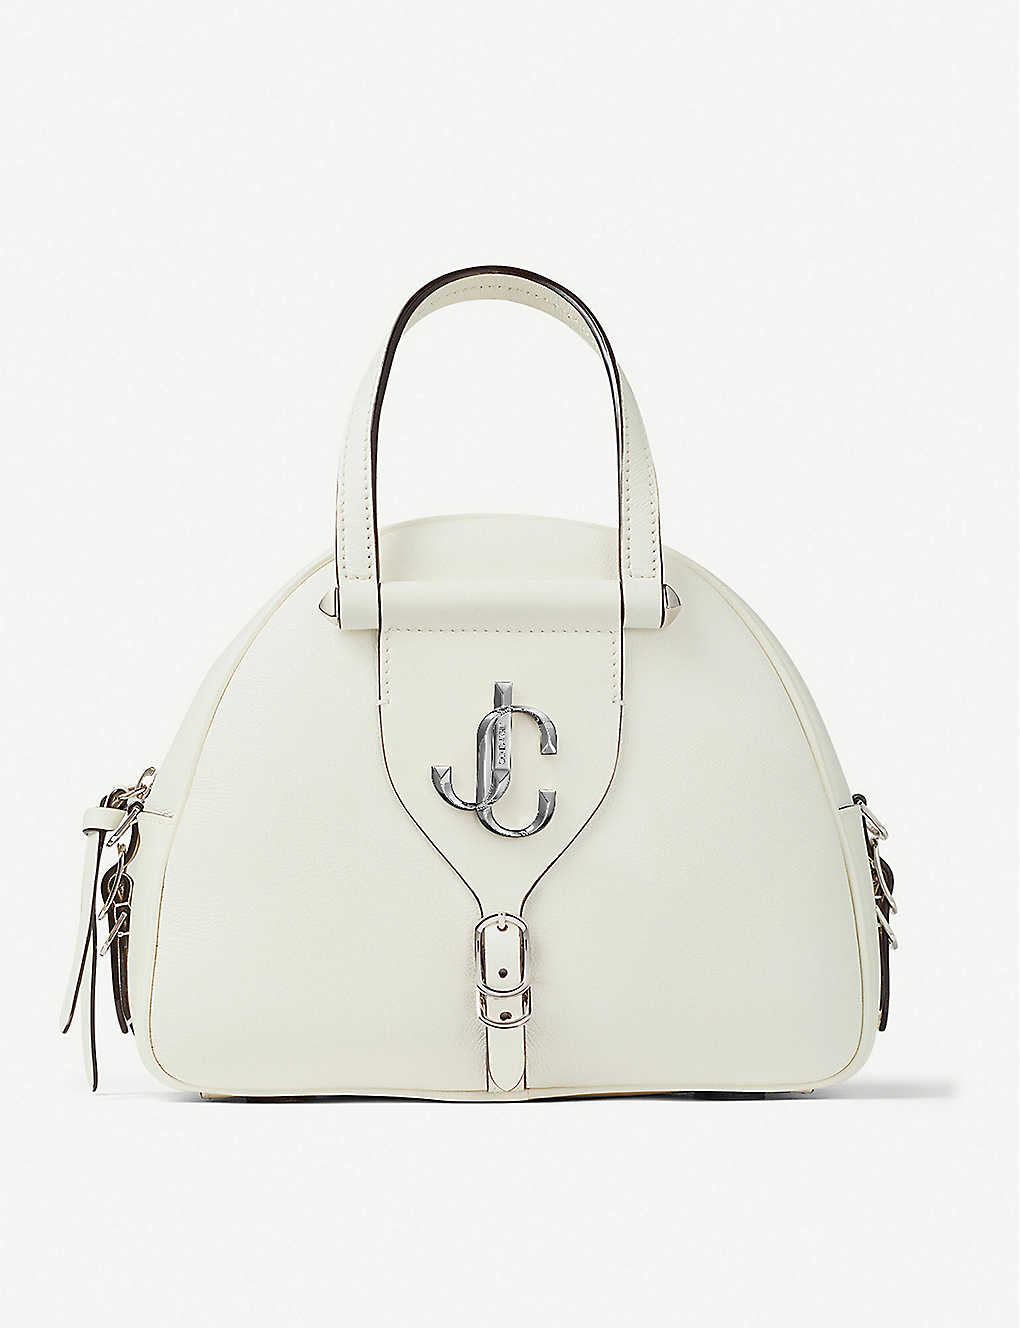 Jimmy Choo Bags Varenne leather bowling bag